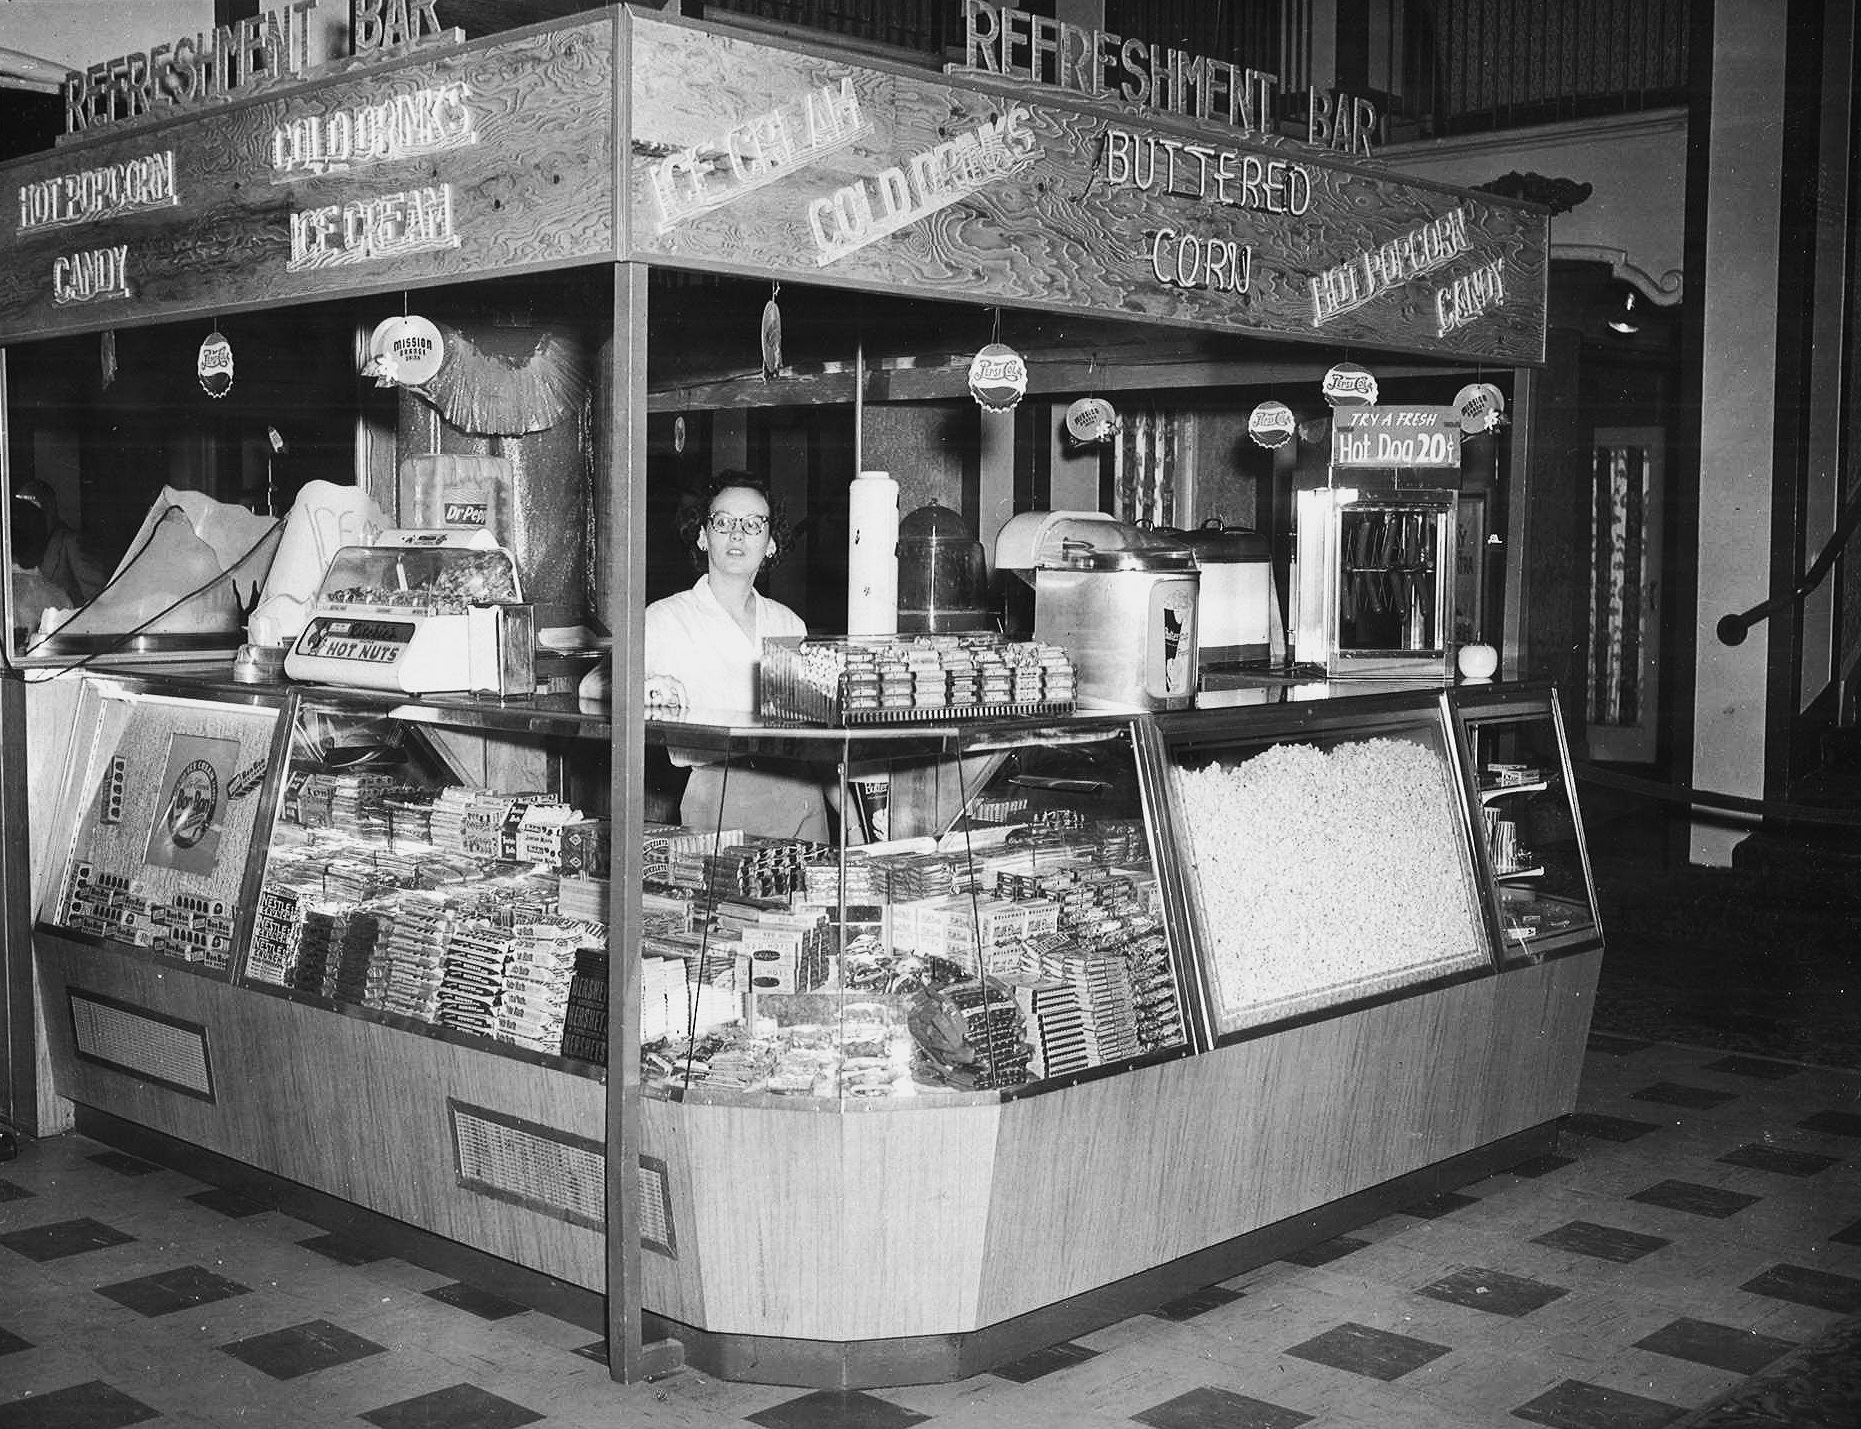 LOBBBY CONCESSION STAND (1950s)